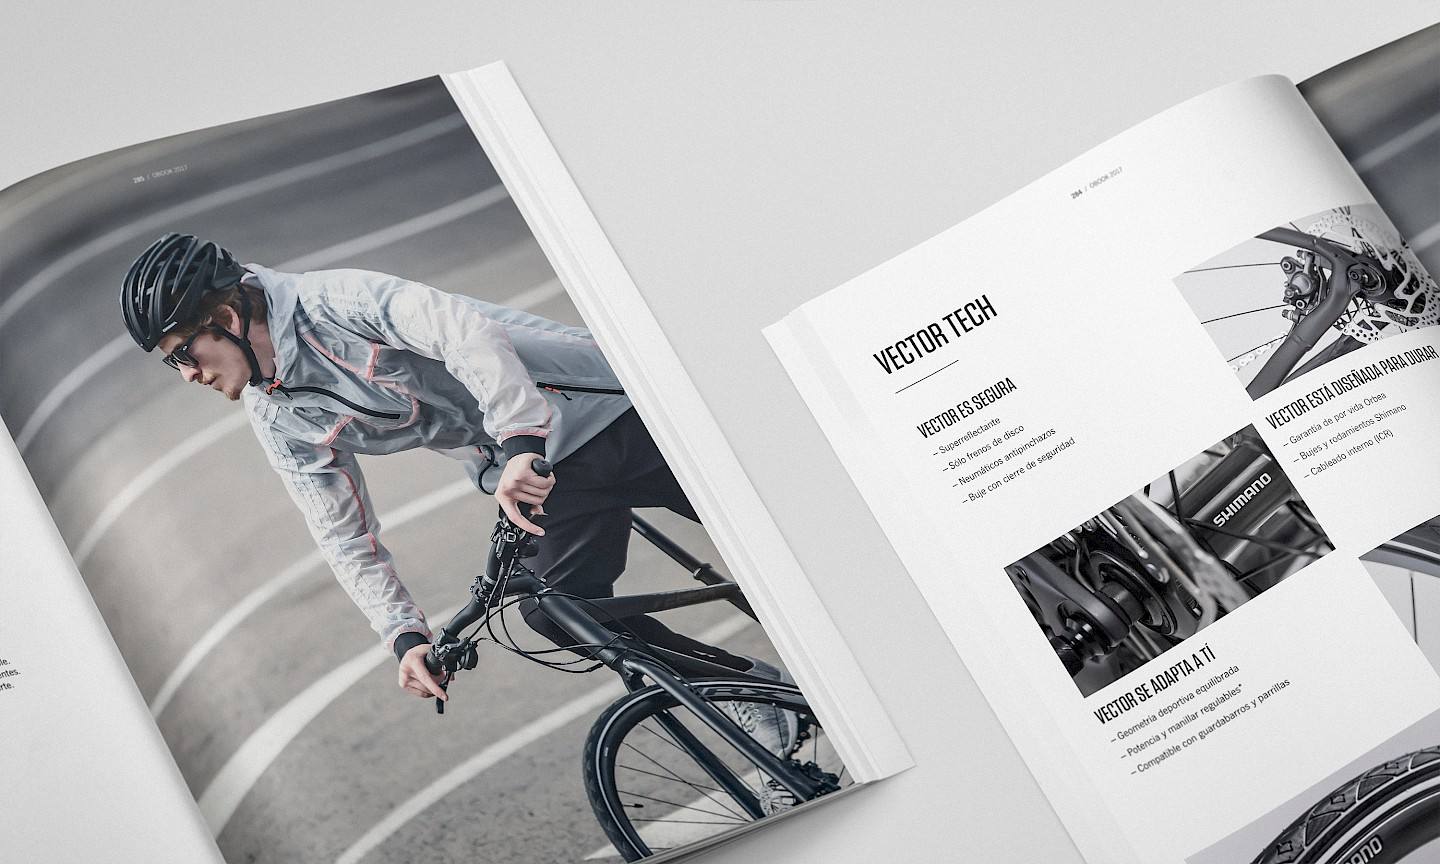 sports orbea magazine move print narrative lifestyle 03 branding design spaces